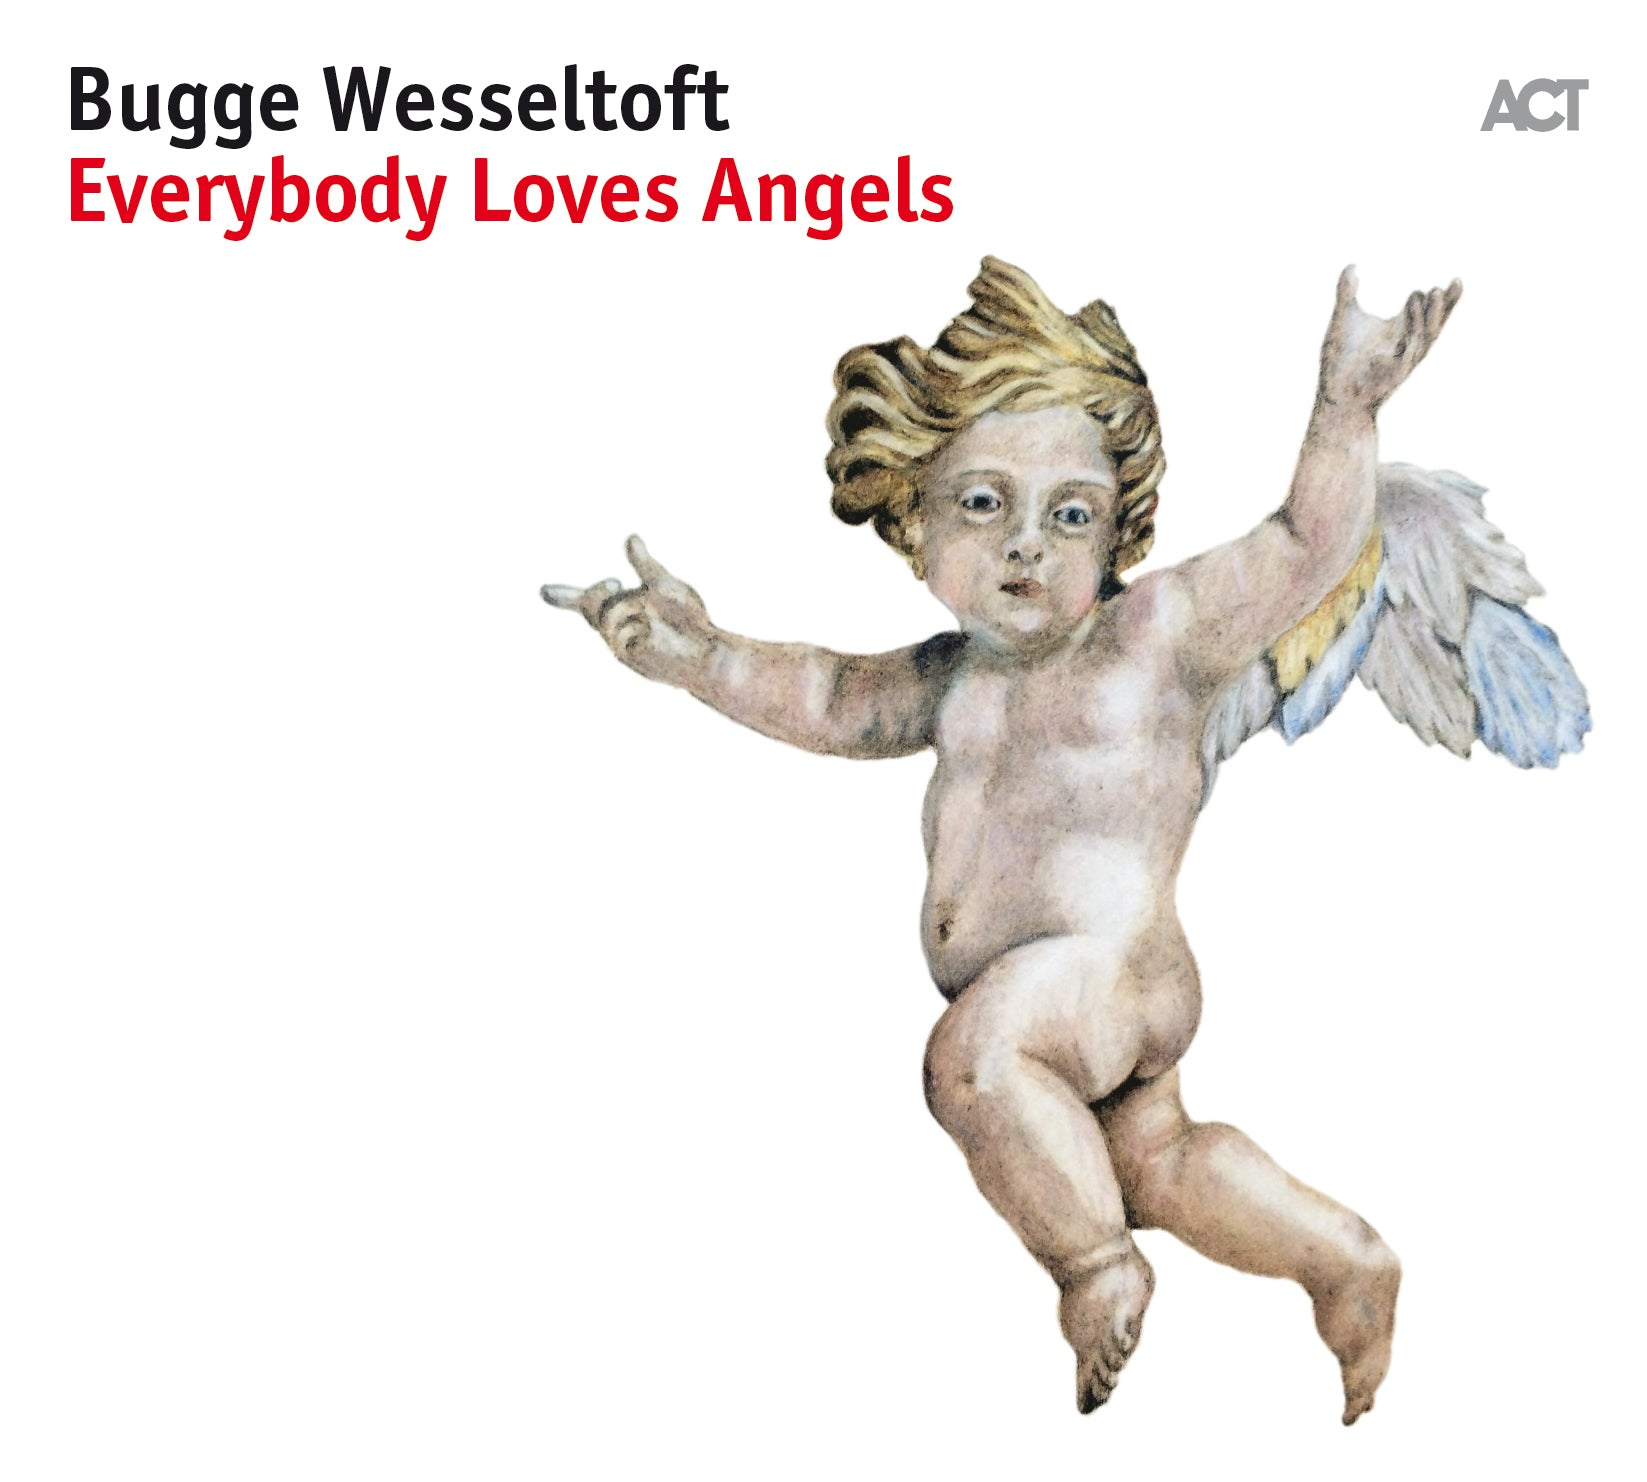 Everybody Loves Angels (ACT)